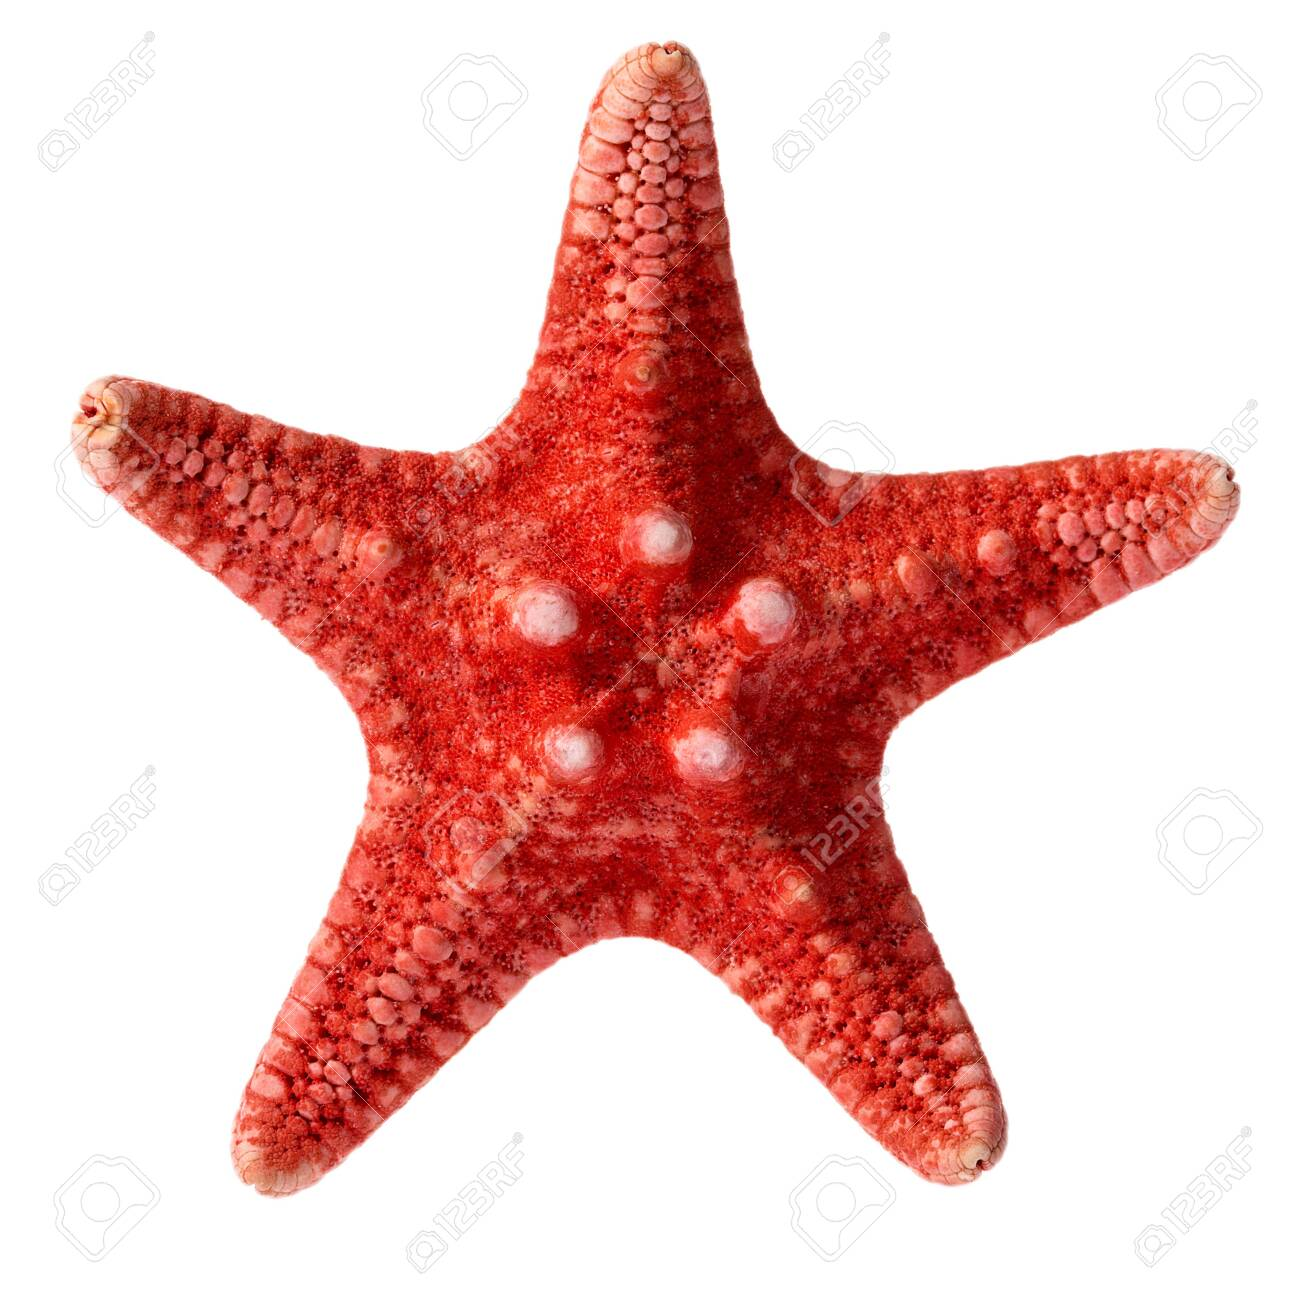 Dried red sea star isolated on white background, close up - 129448031